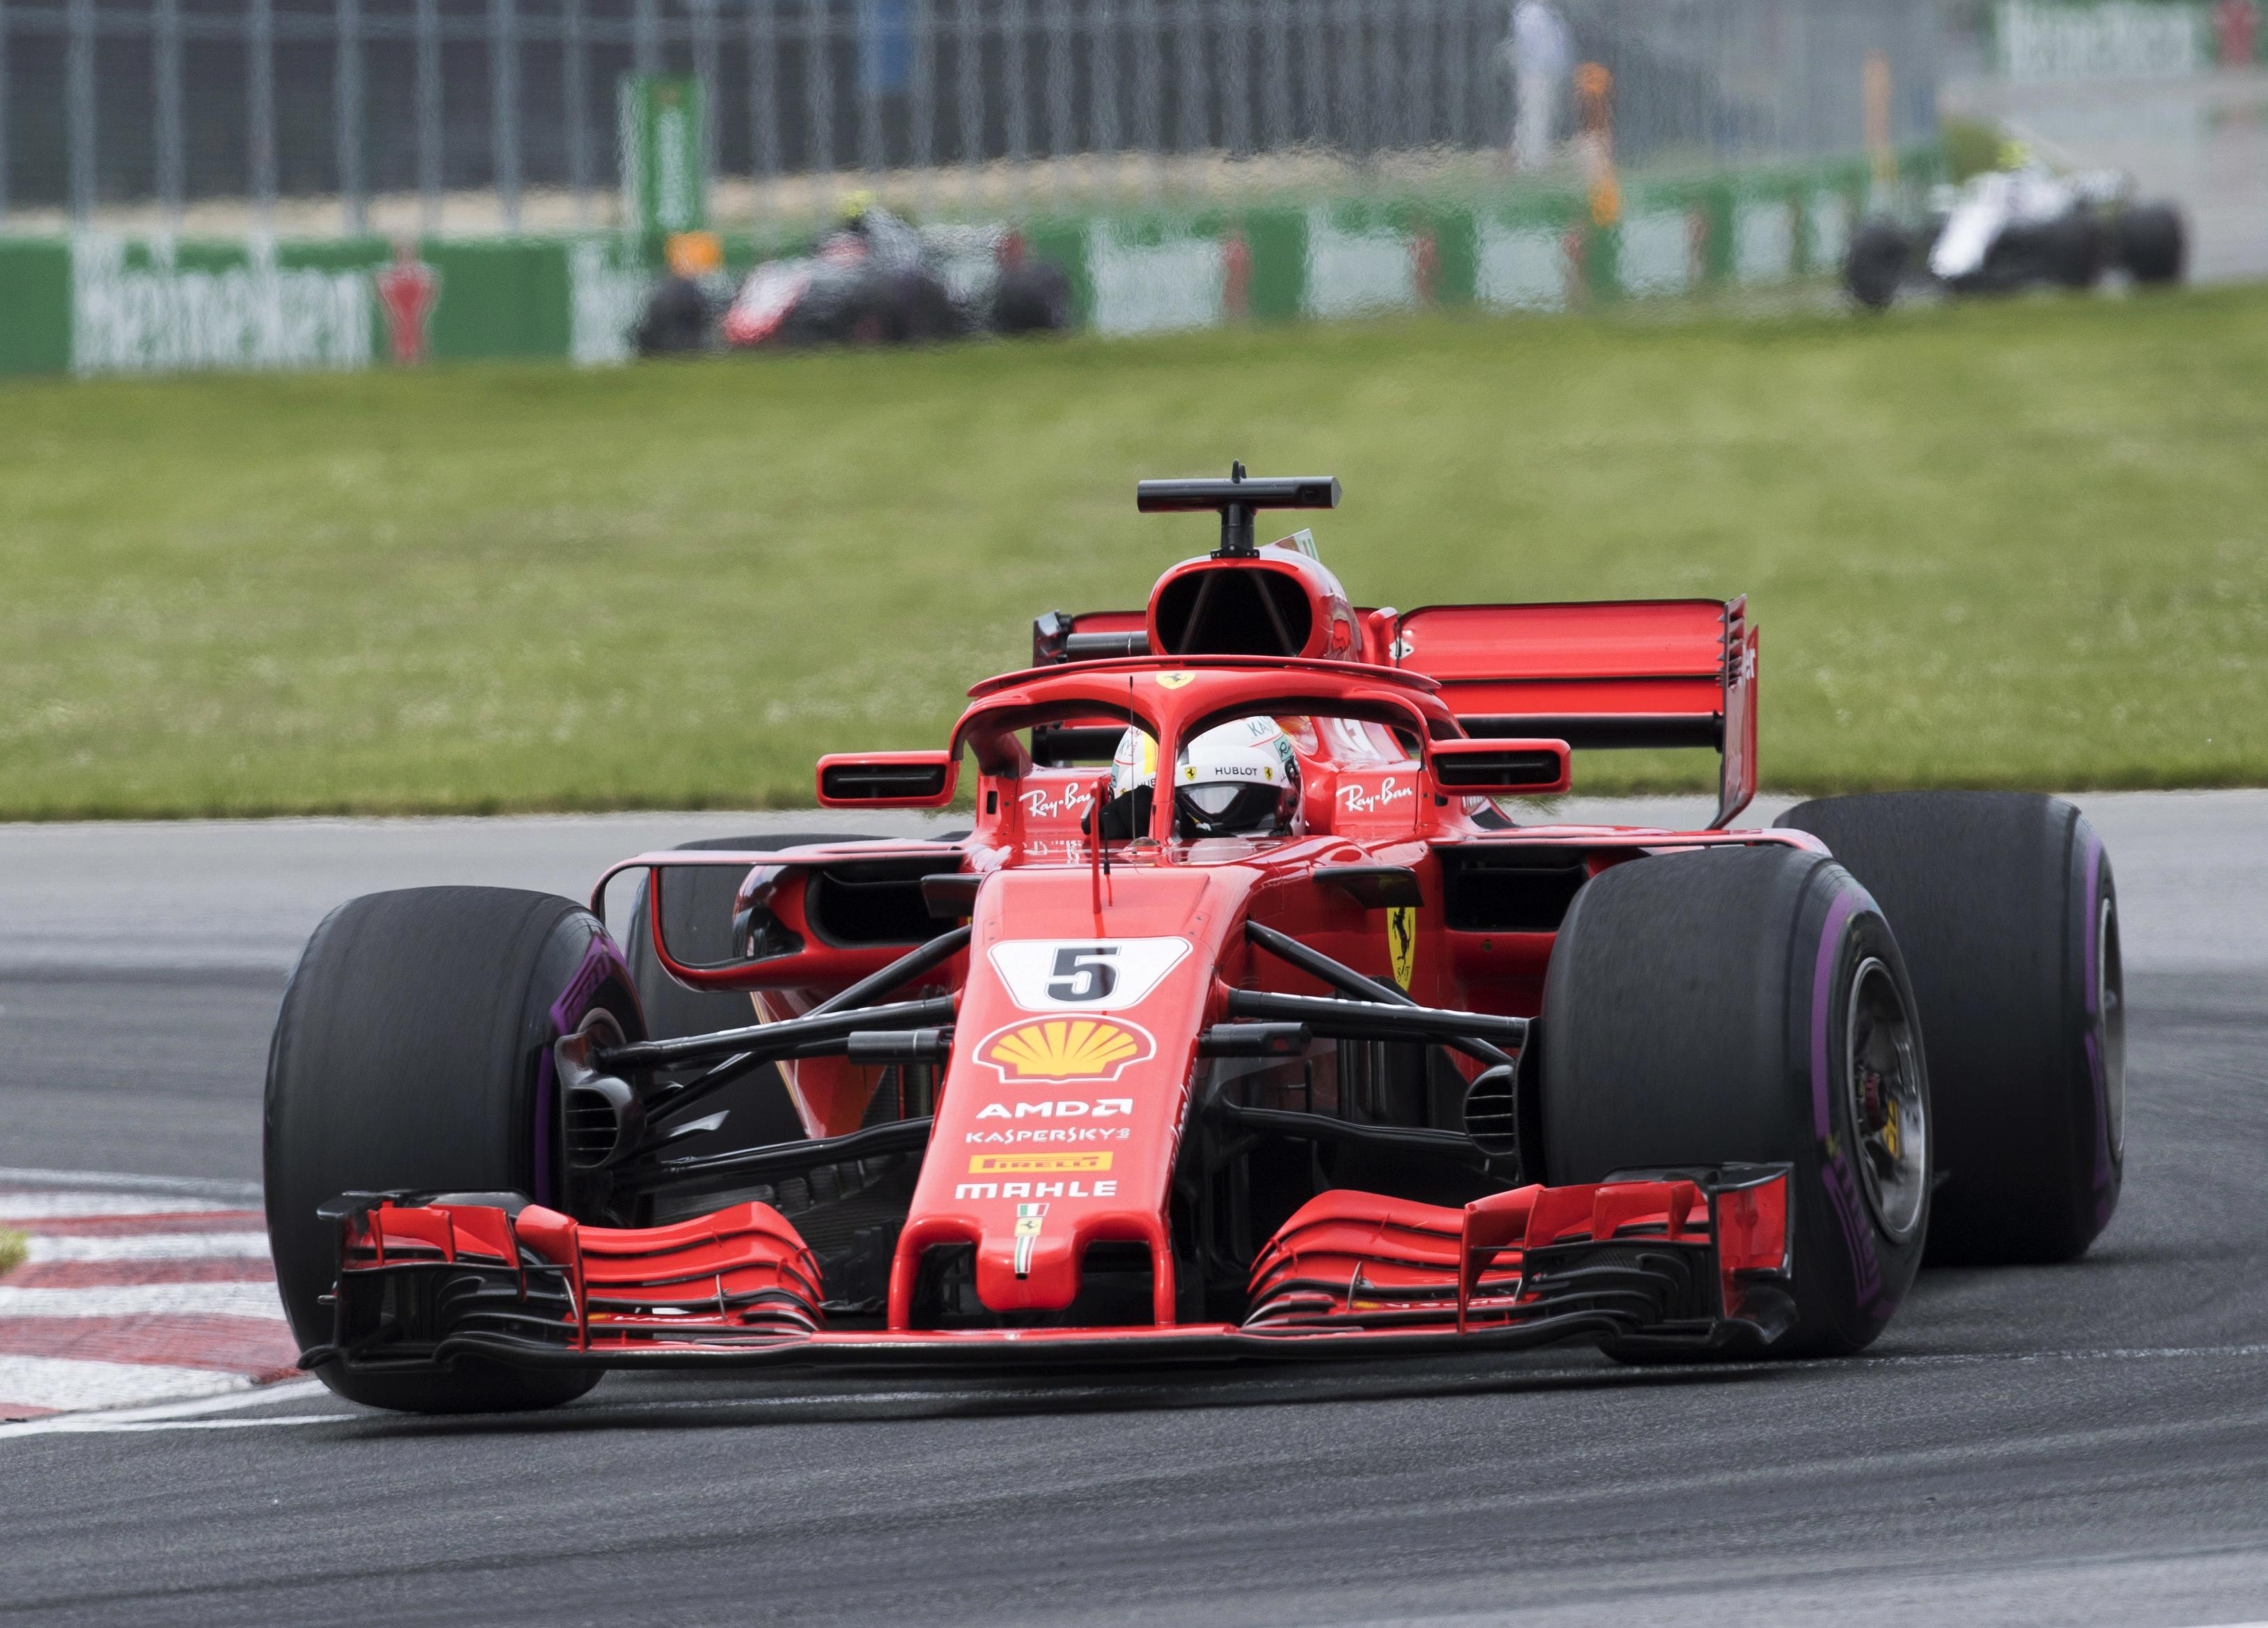 Sebastian Vettel won the Canadian Grand Prix